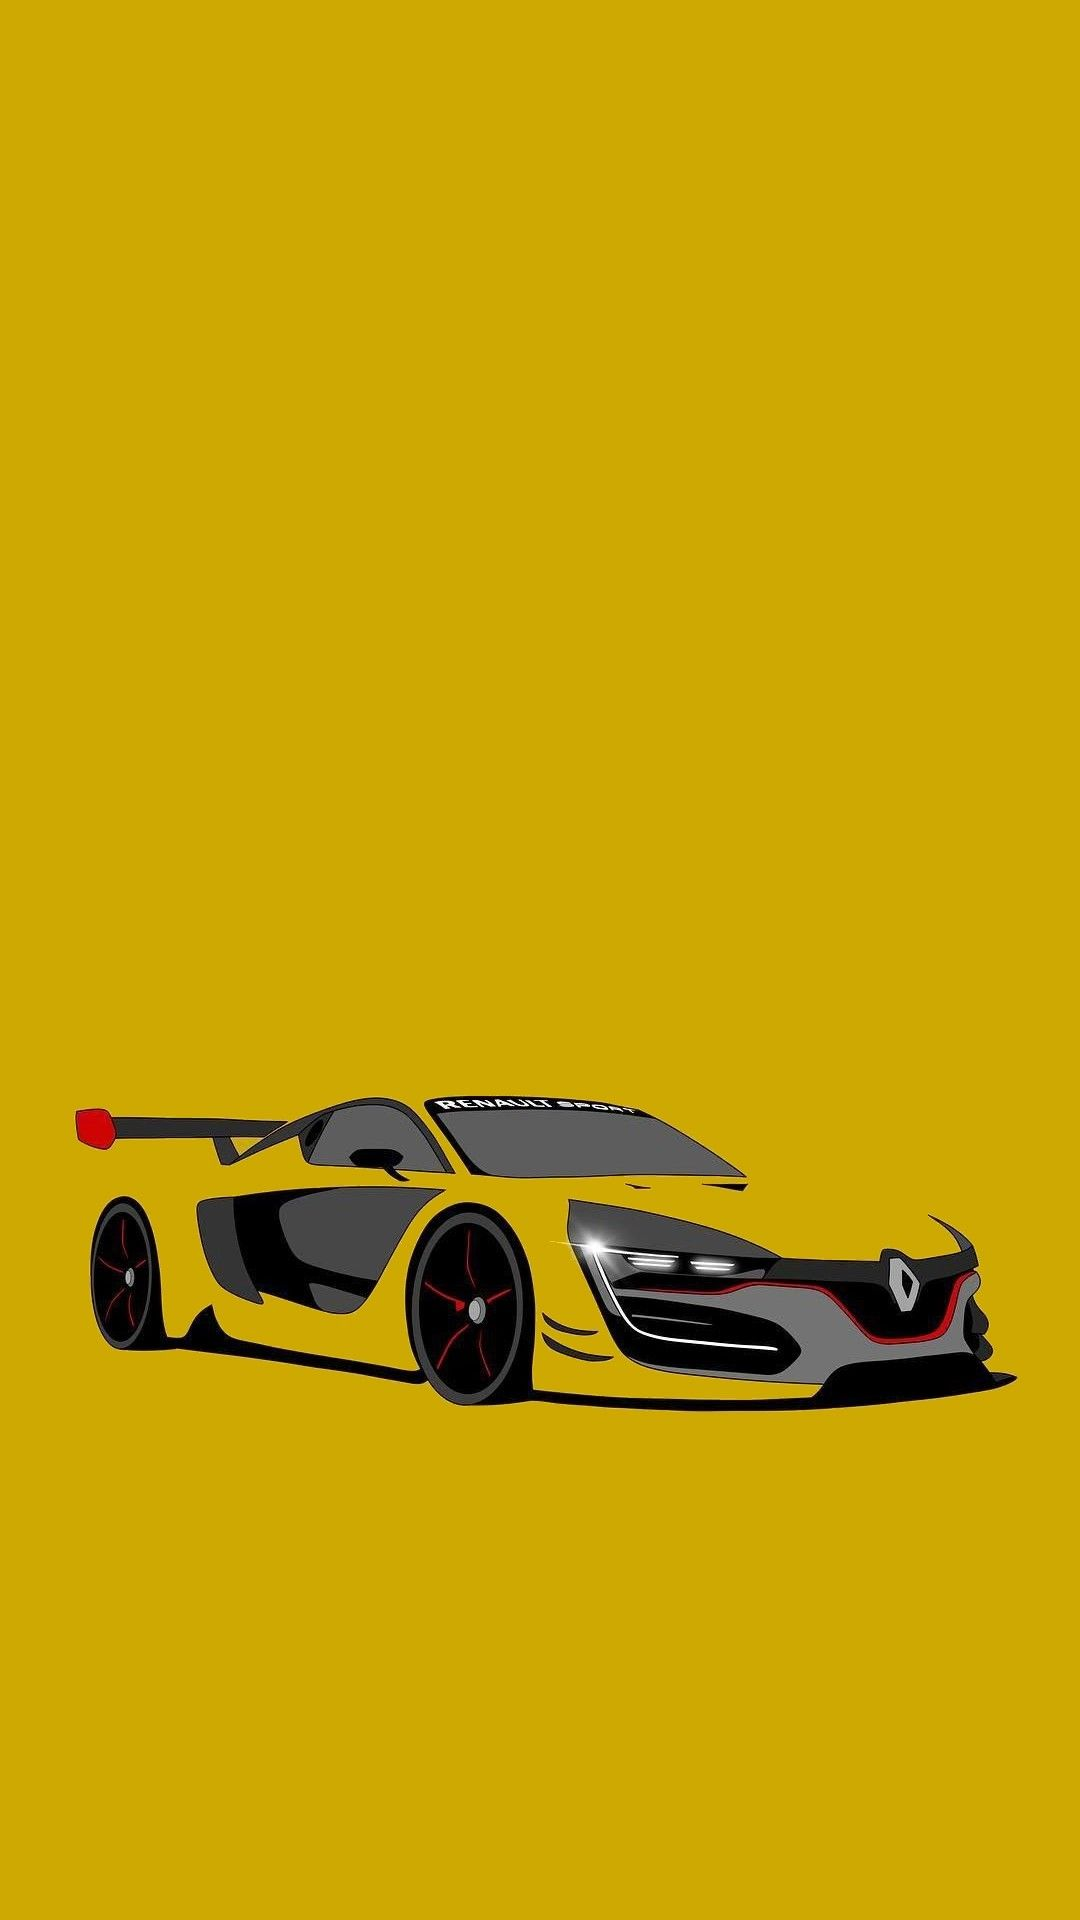 Pin By Ashifraza On Iron Man Wallpaper In 2020 Super Cars Sport Cars Futuristic Cars